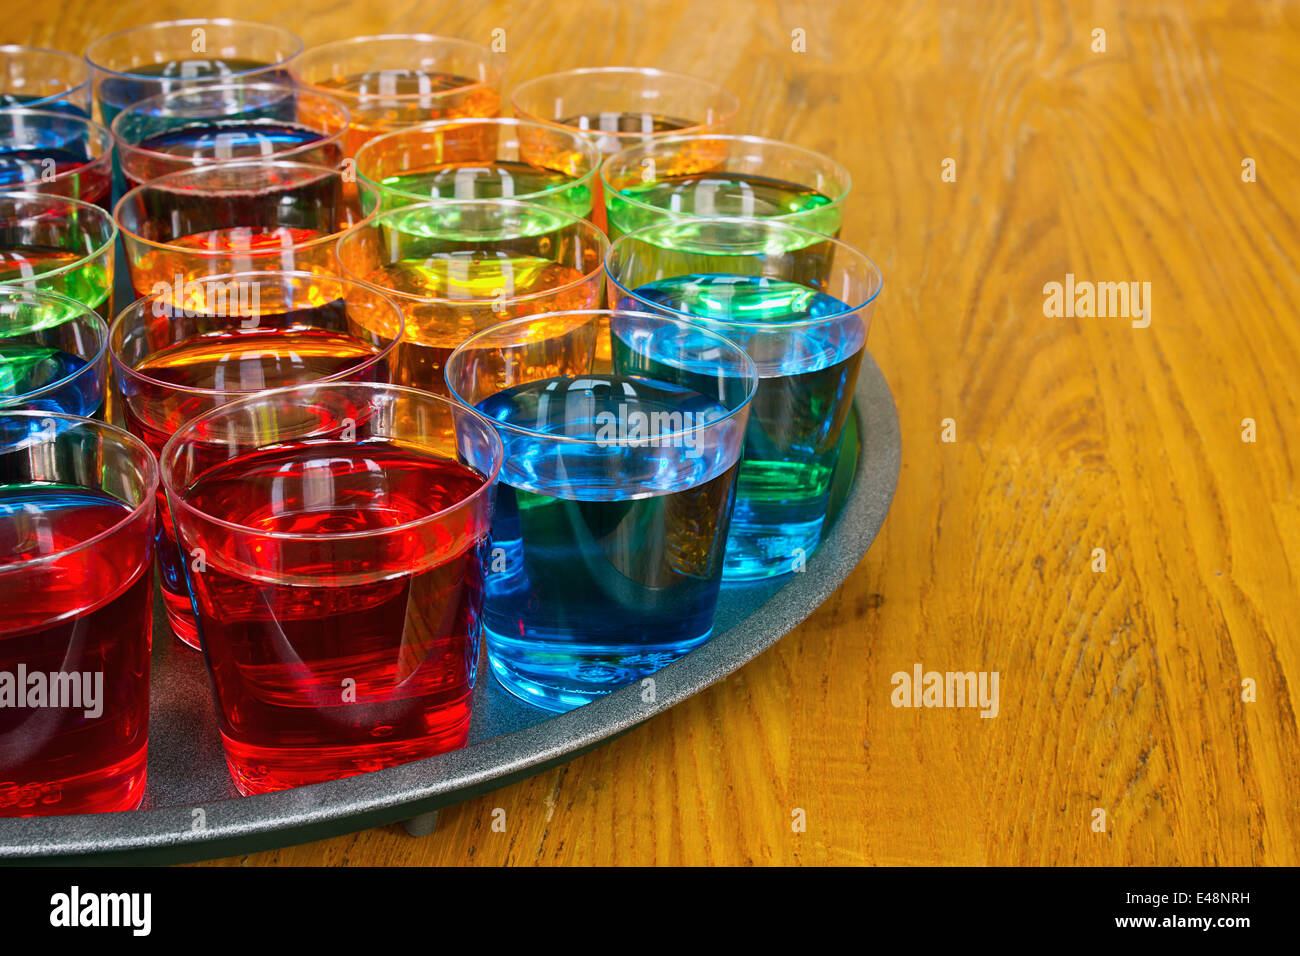 Drinks promotion with various shots on a tray to test as samplers or tasters for merchandising in the drinks industry. - Stock Image